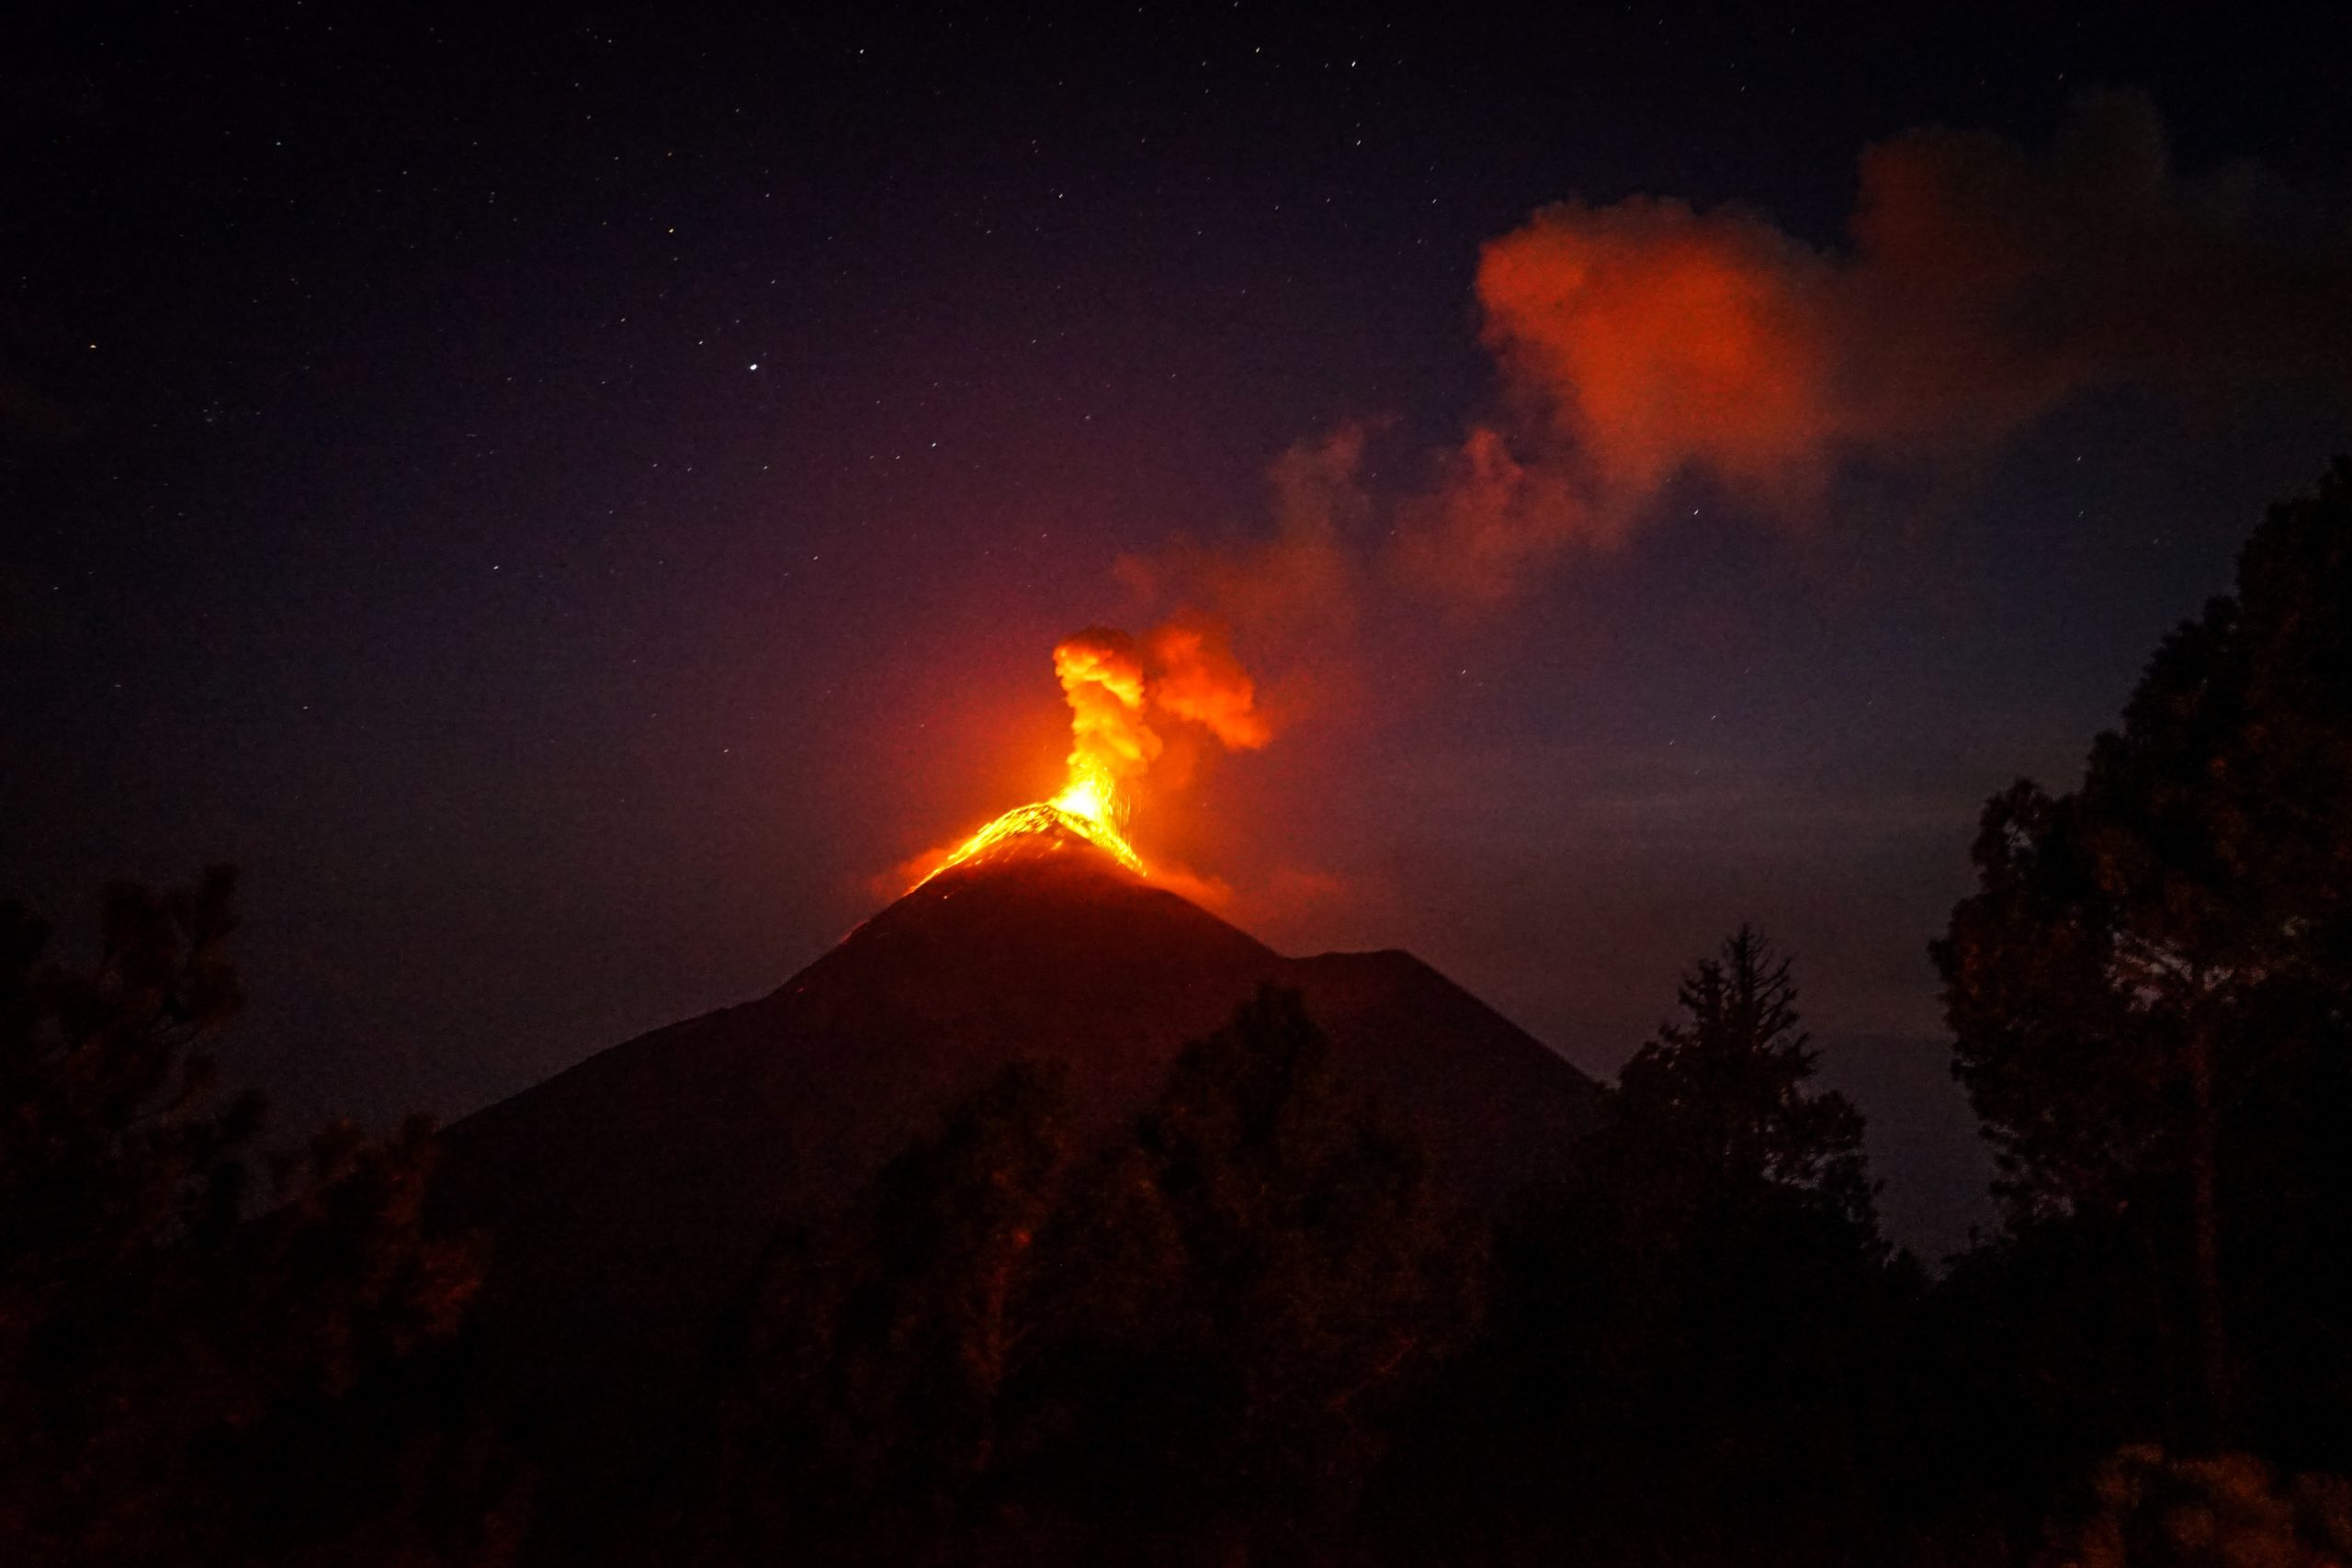 volcano featured image for BItcoin article